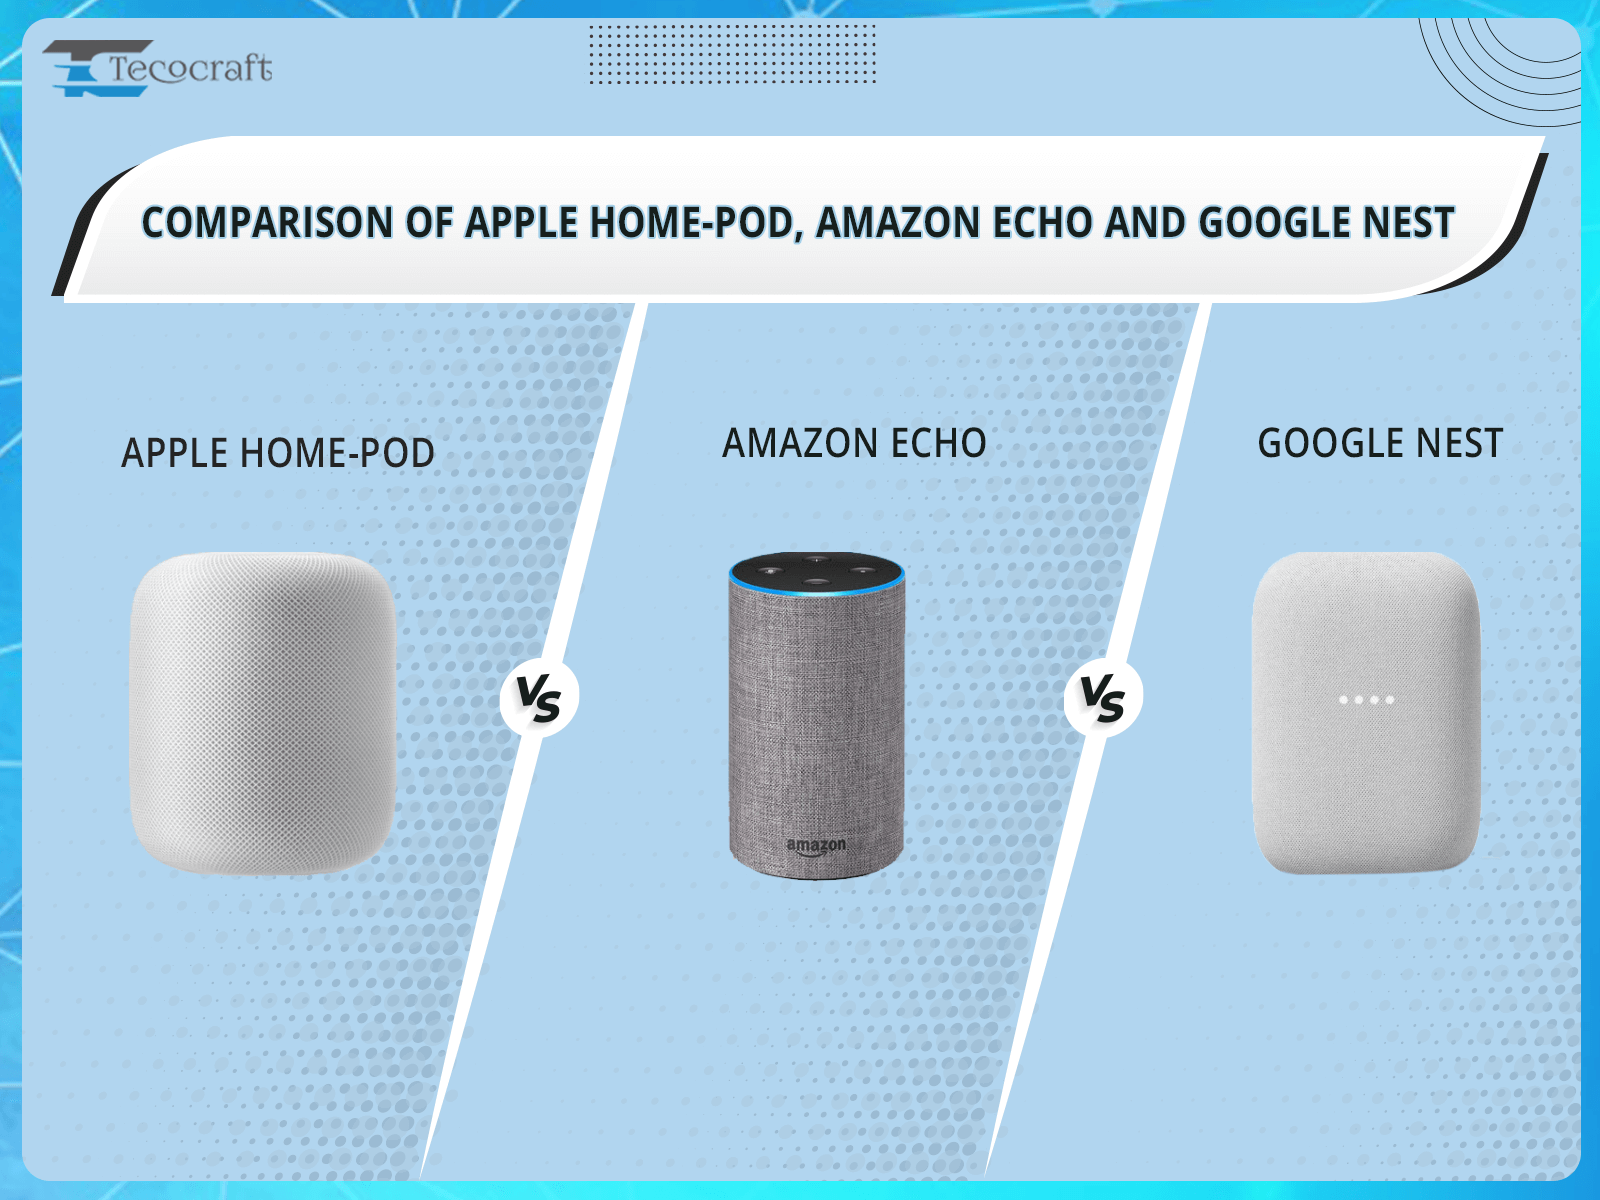 Comparison of Apple home pod, Amazon echo And Google nest